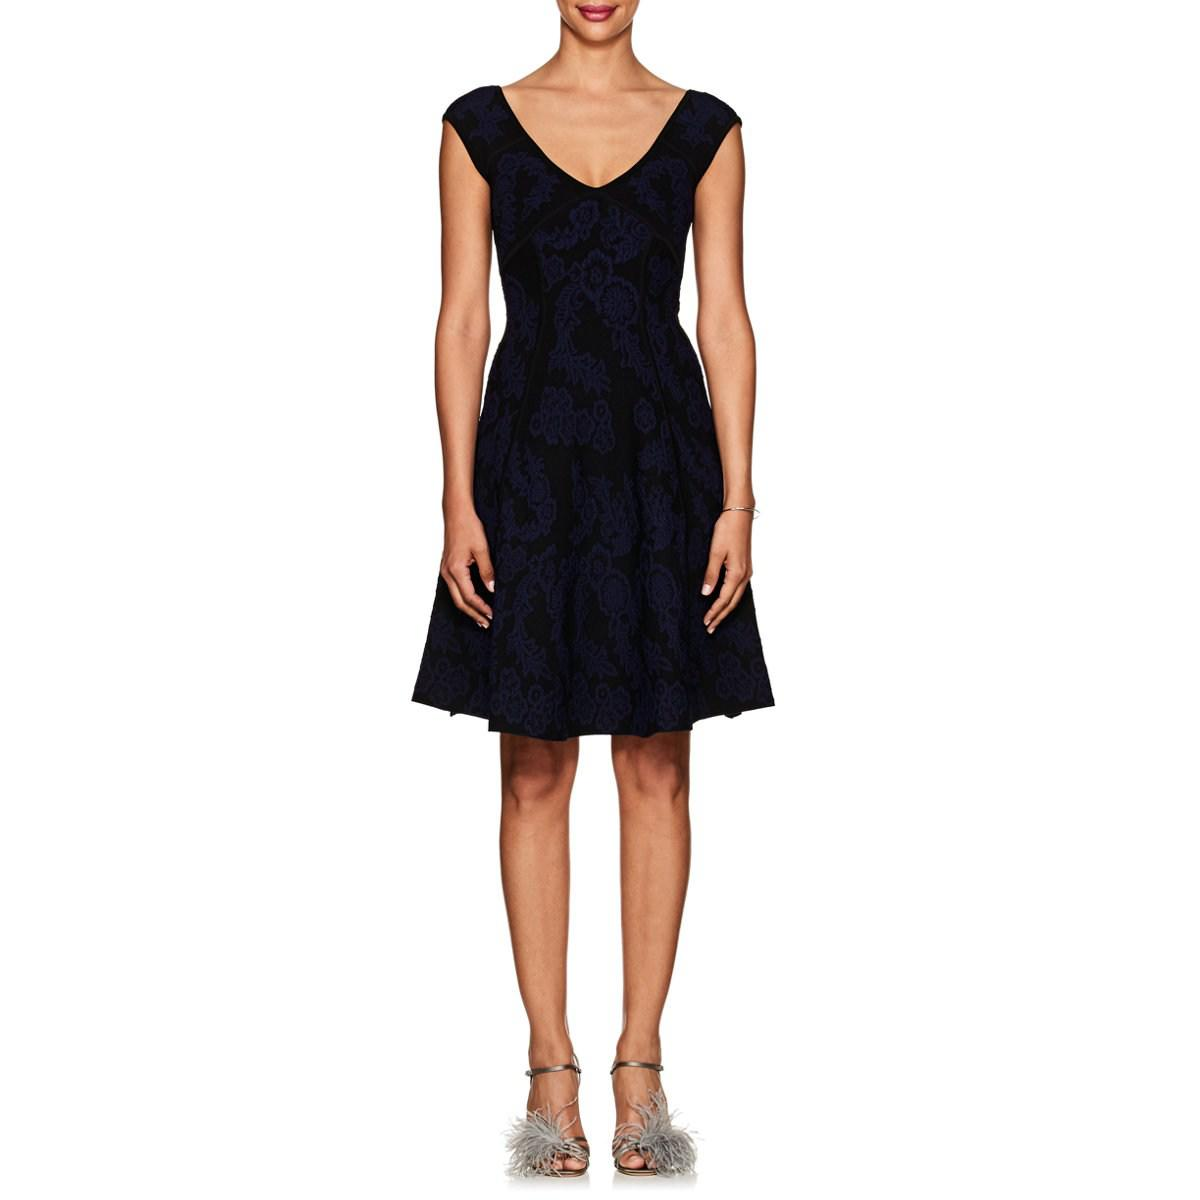 Womens Jacquard Fit & Flare Dress Zac Posen Kzr1xm6